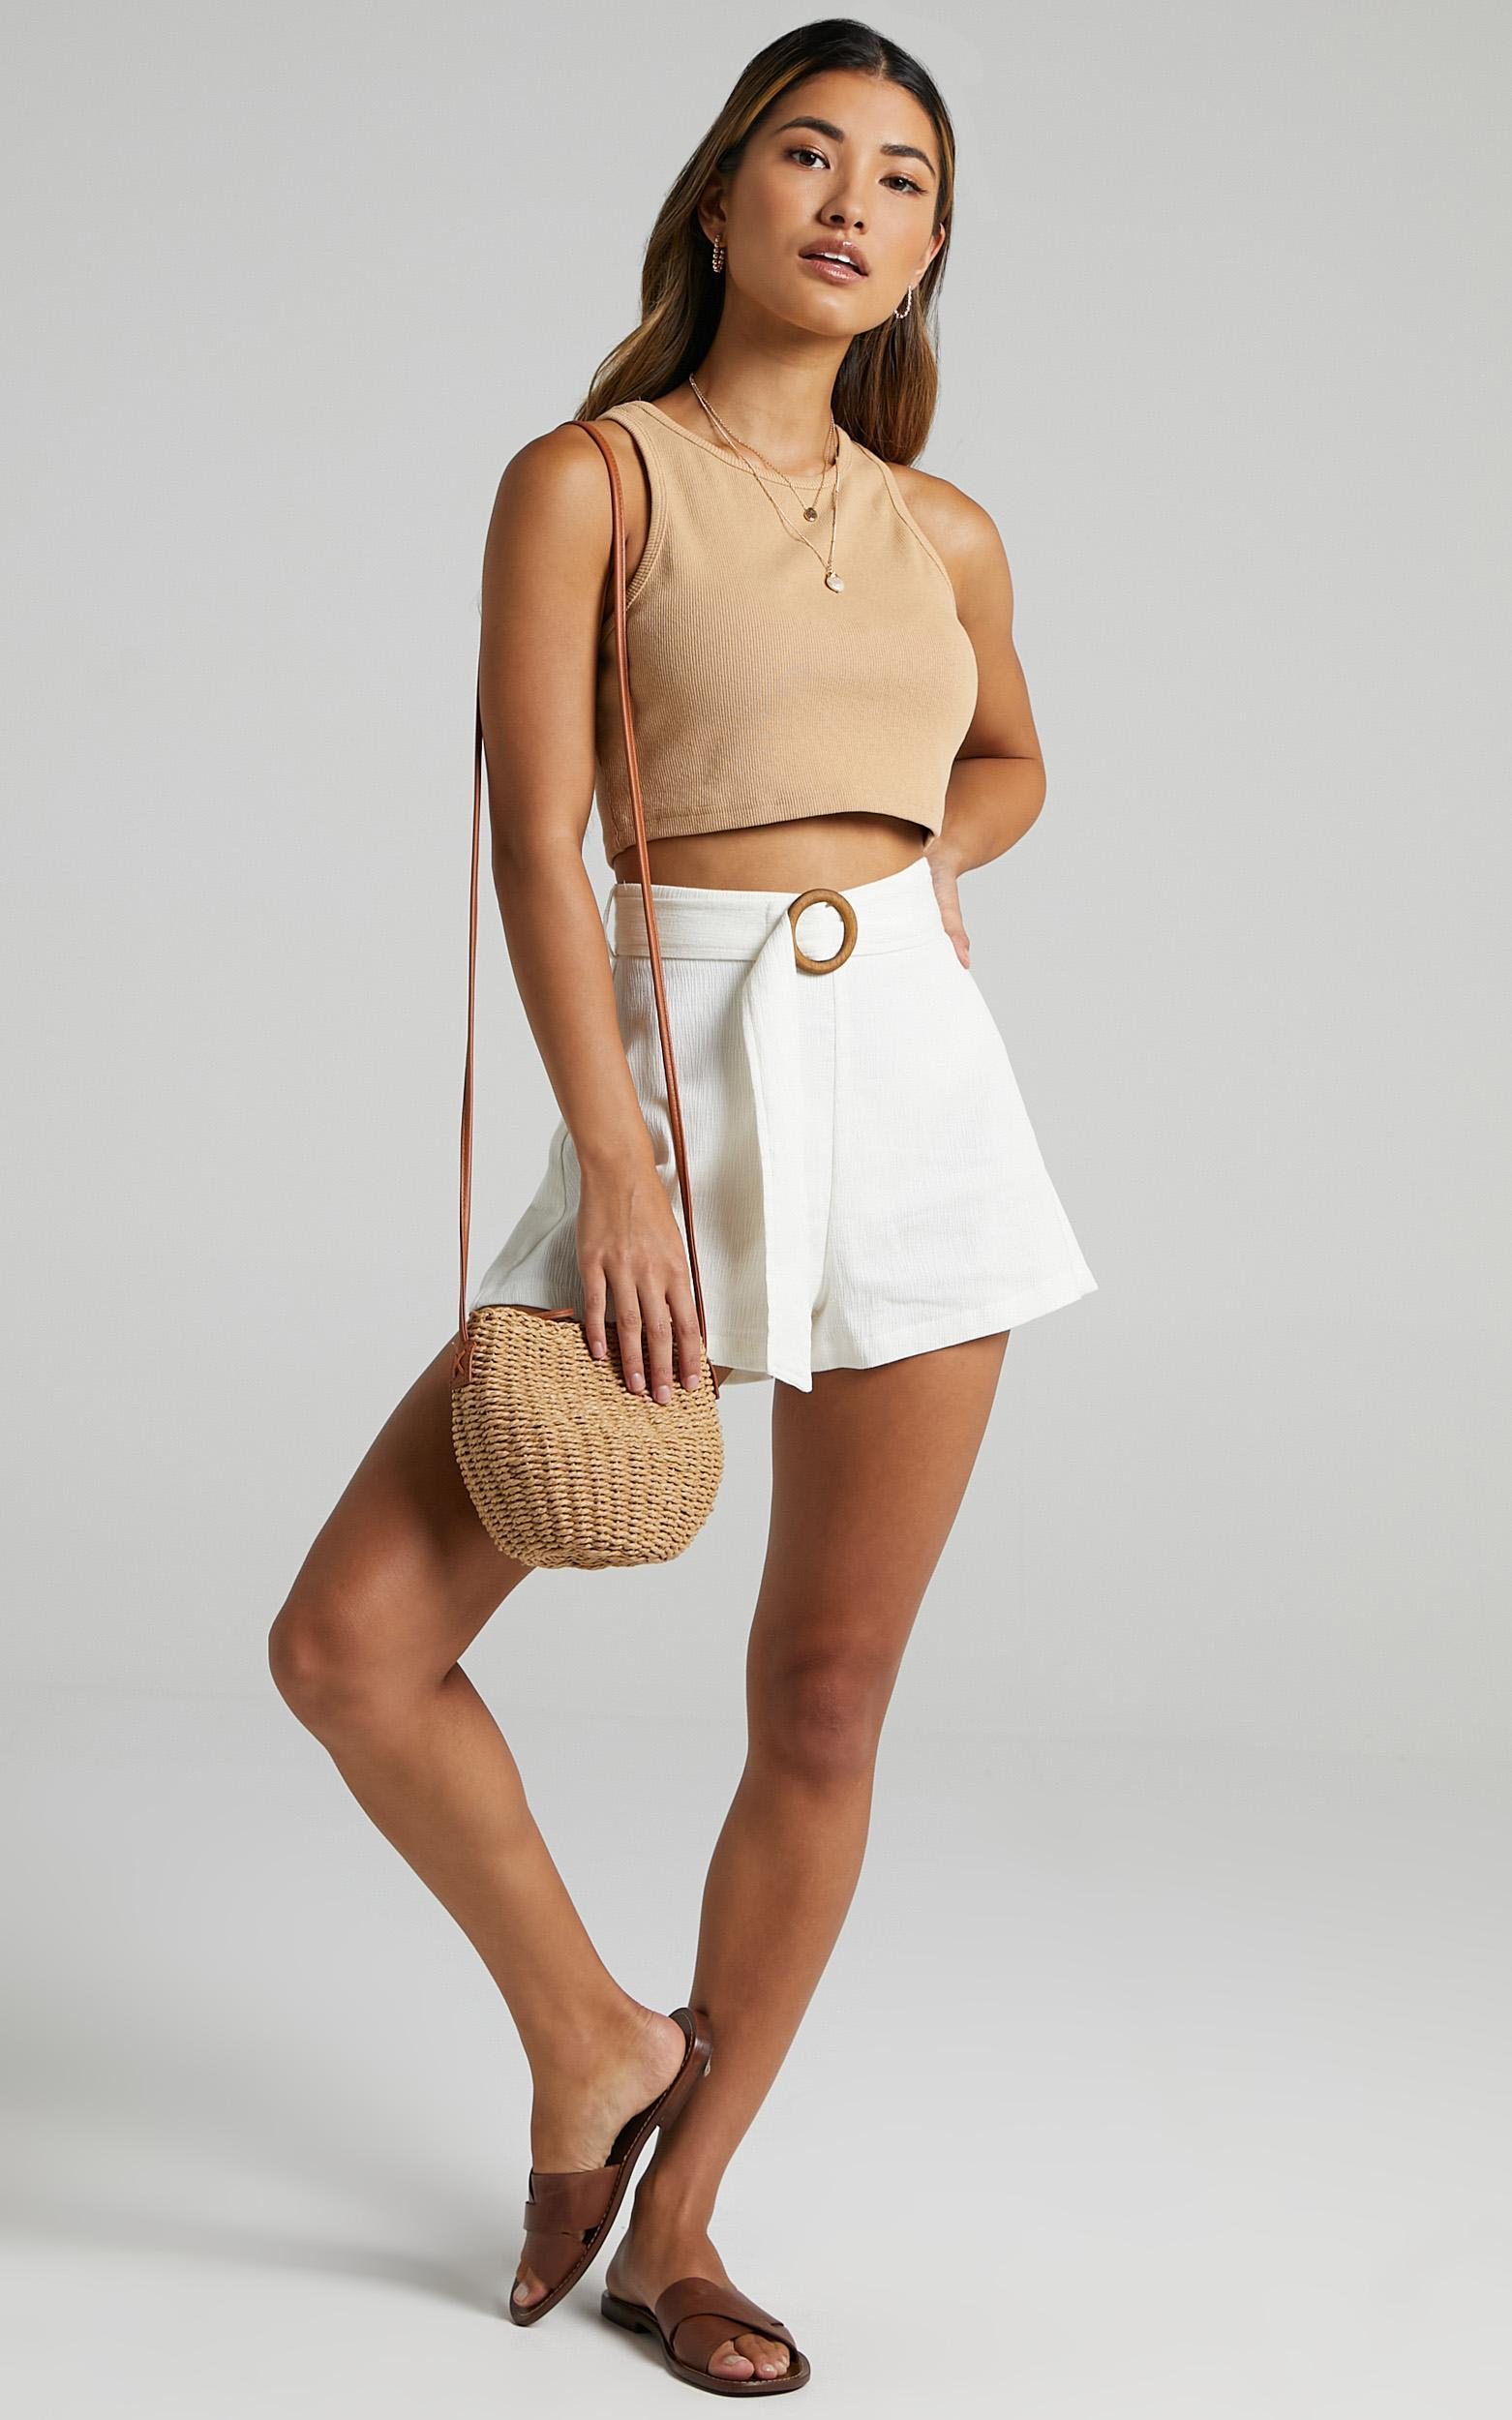 Devera Shorts in Off White - 06, WHT1, hi-res image number null